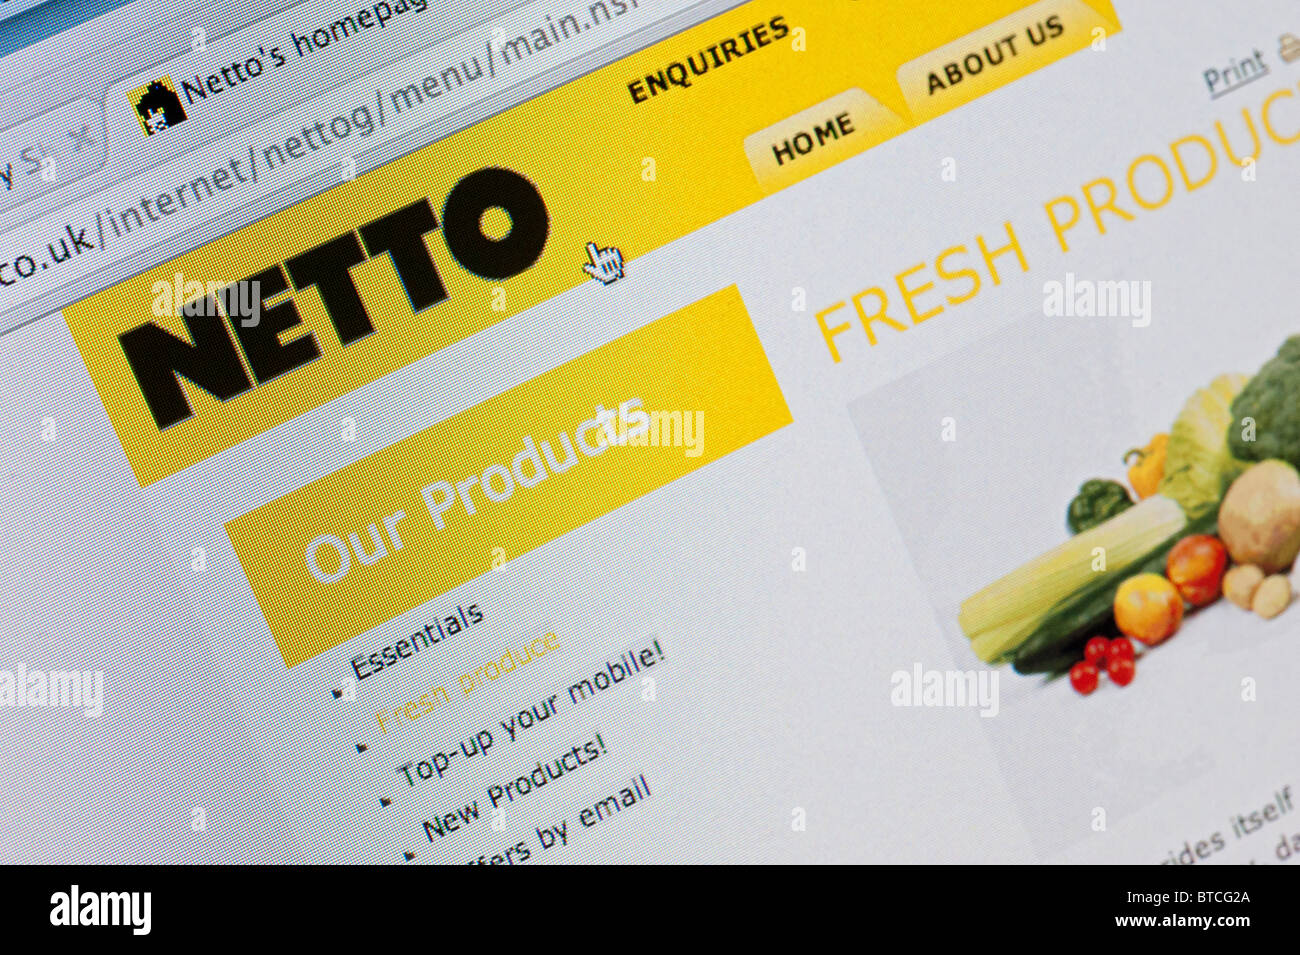 Detail of screenshot from website of Netto home shopping and delivery service - Stock Image